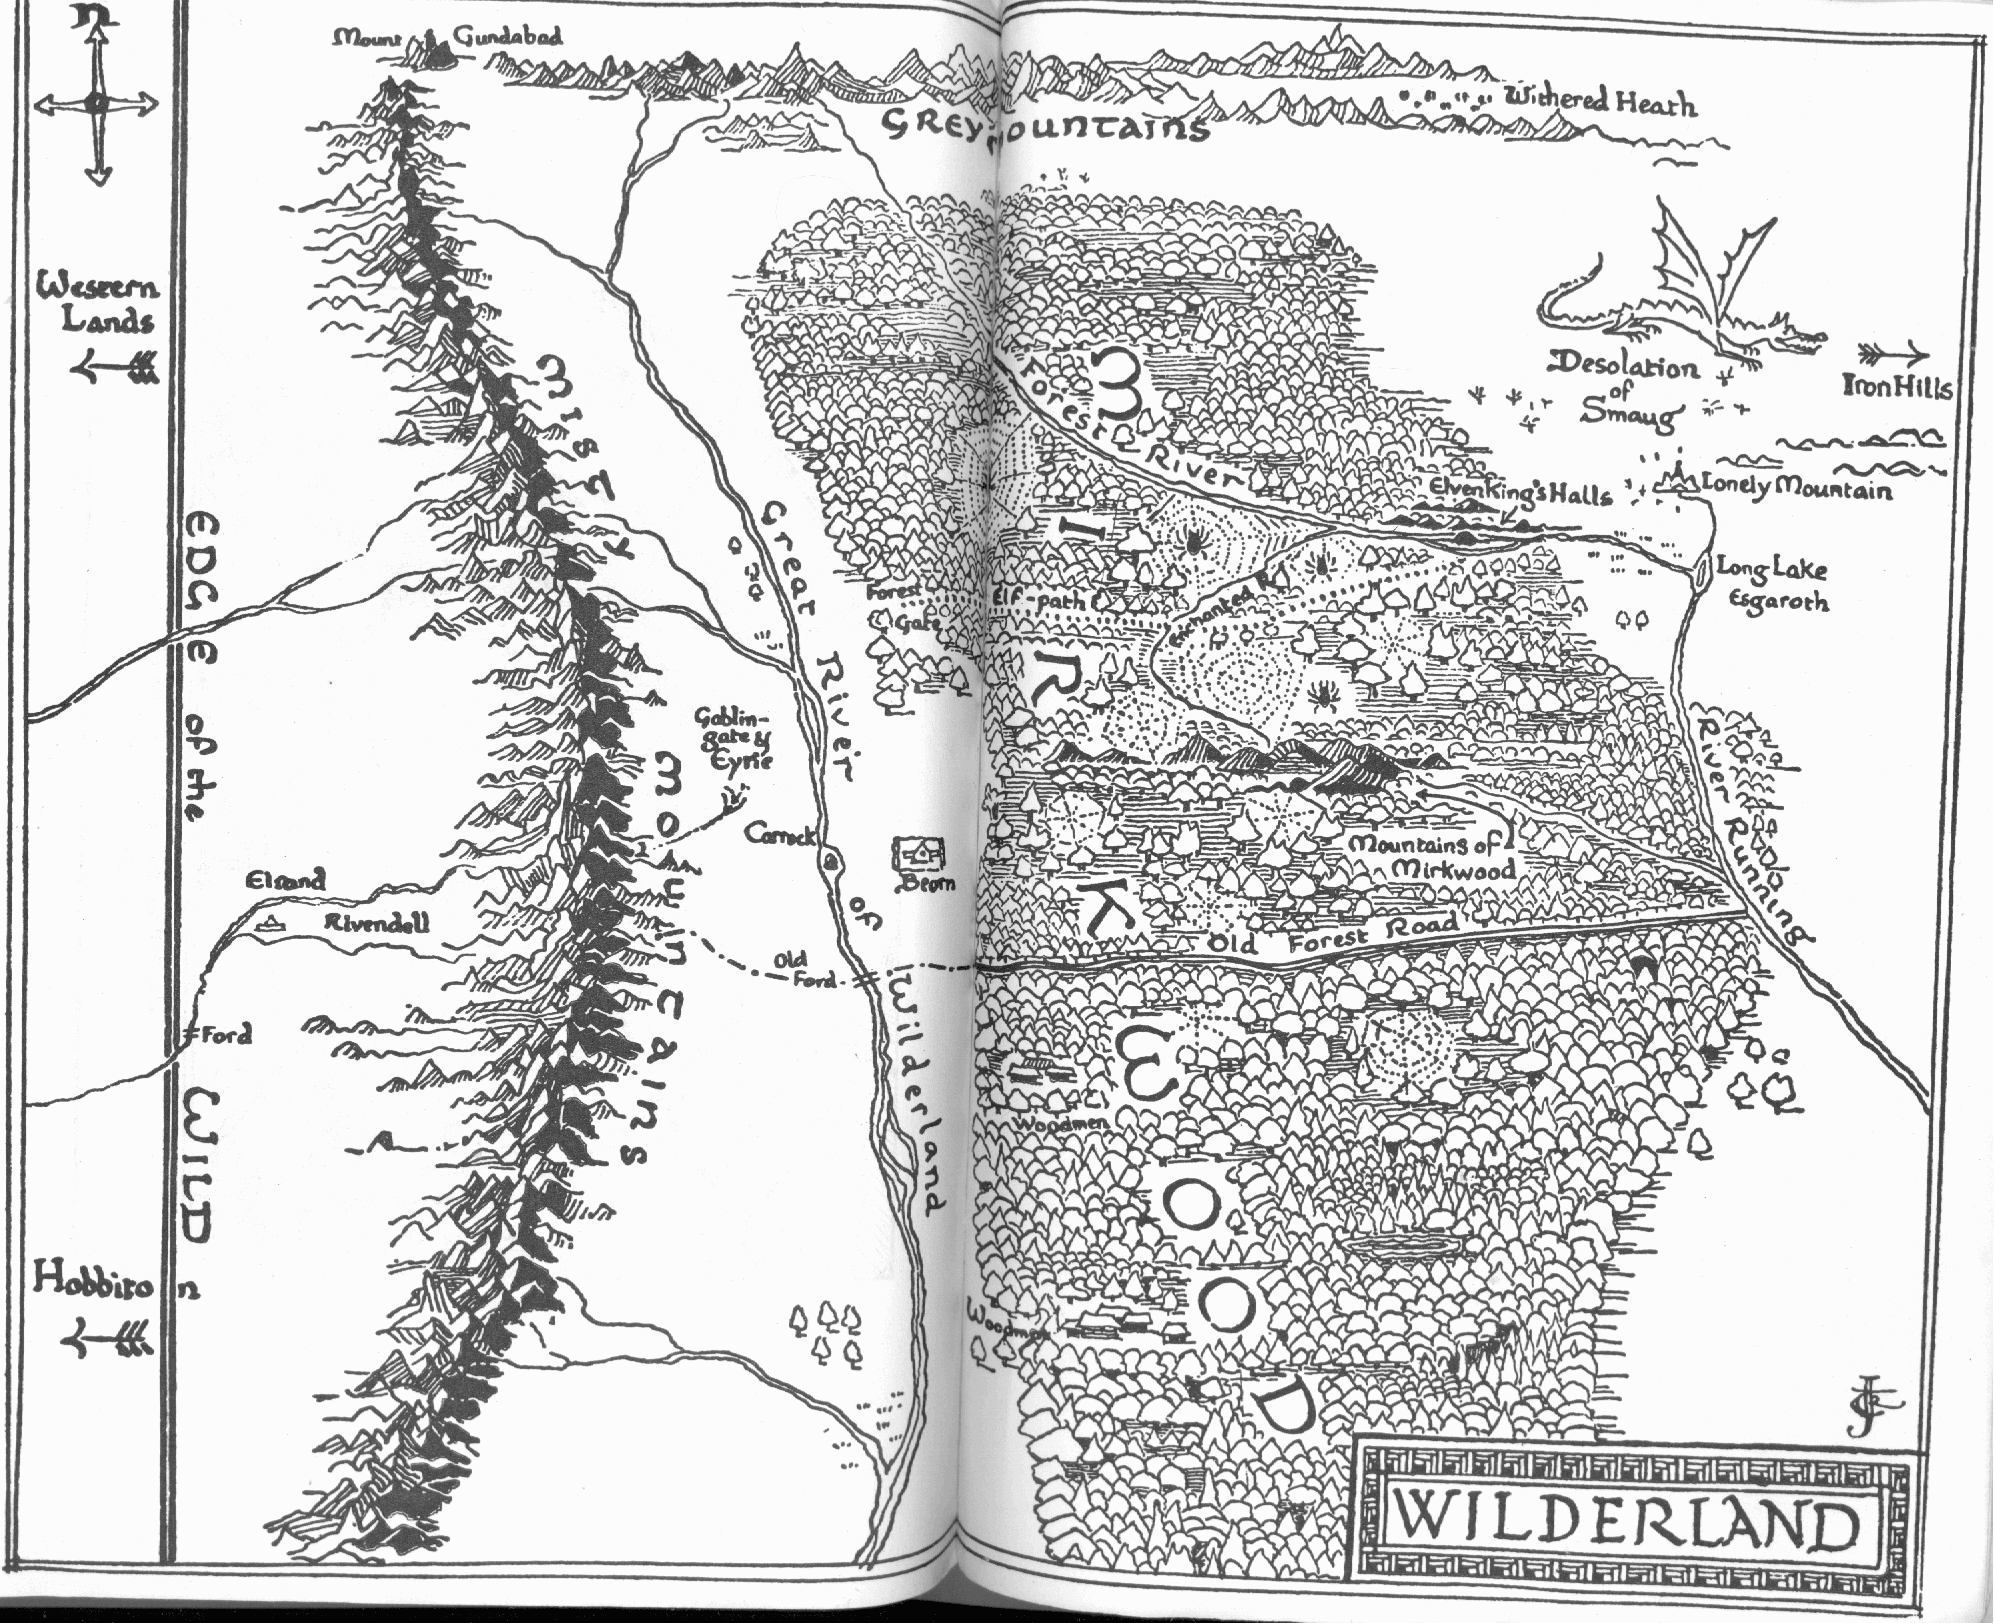 Map Of Wilderland By J R R Tolkien In His Book The